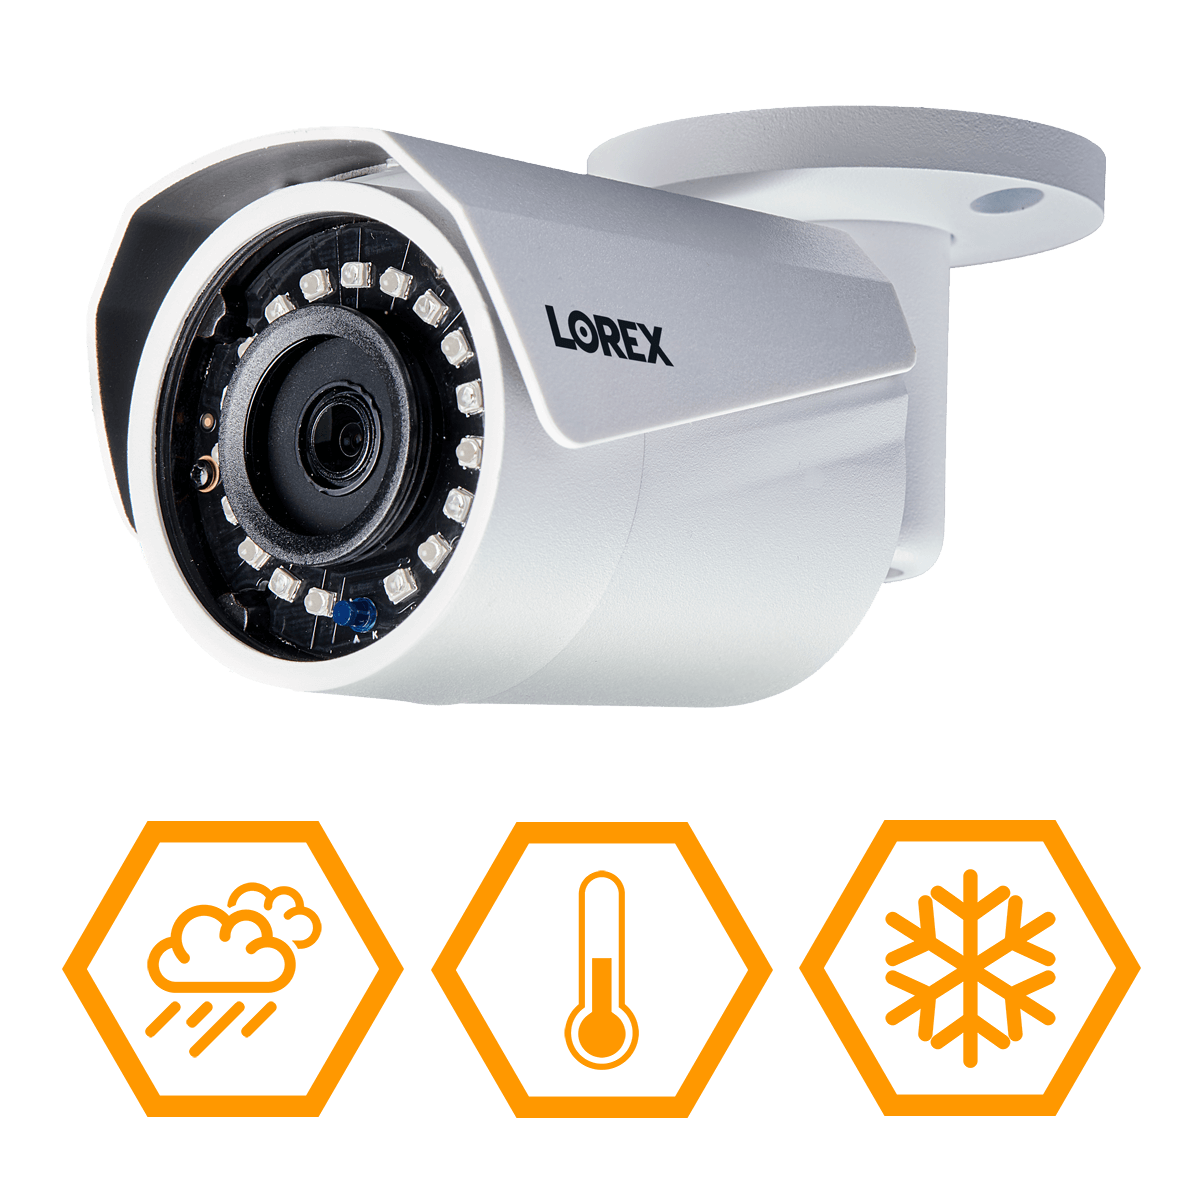 Wireless weatherproof and vandal-resistant security cameras